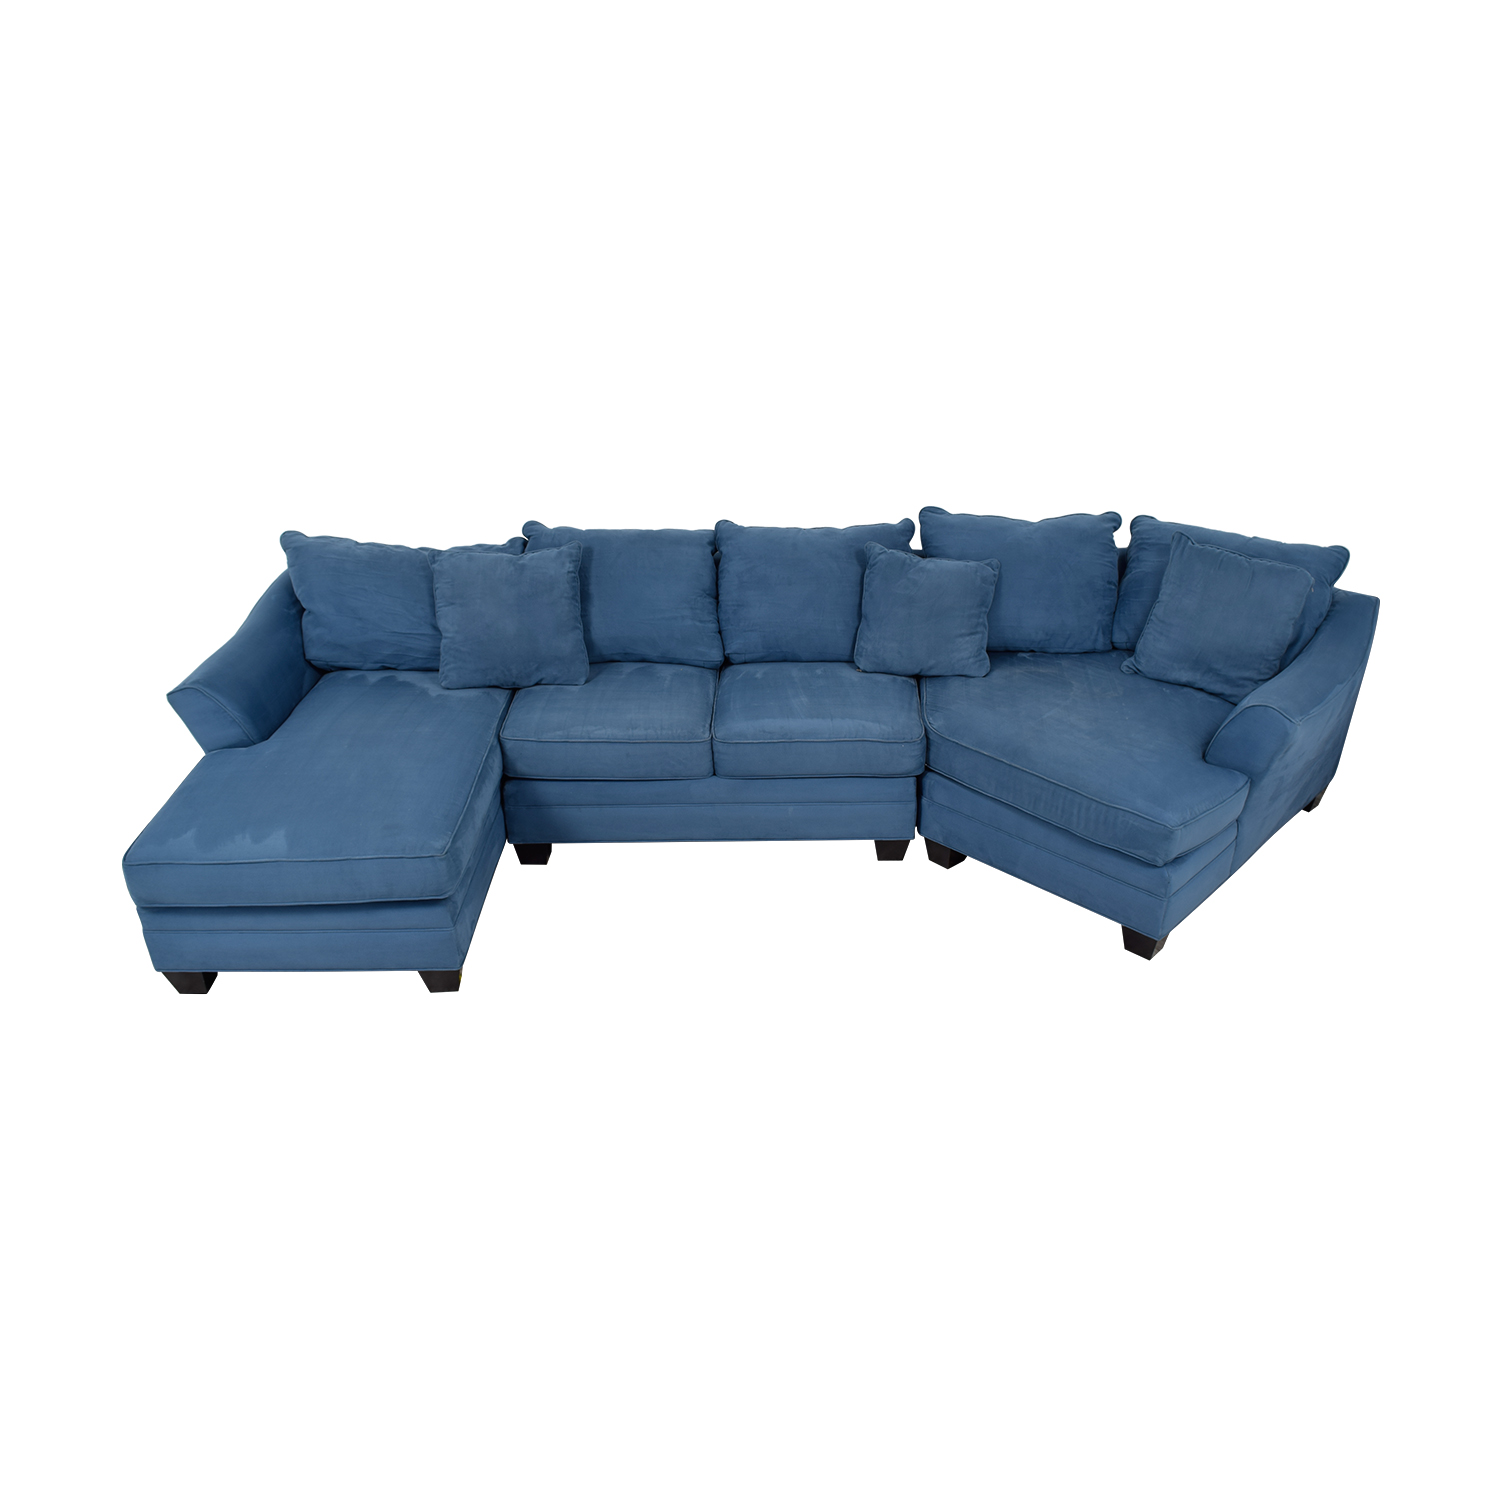 H.M. Richards Foresthill Blue Microfiber Chaise and Corner Seat Sectional / Sofas